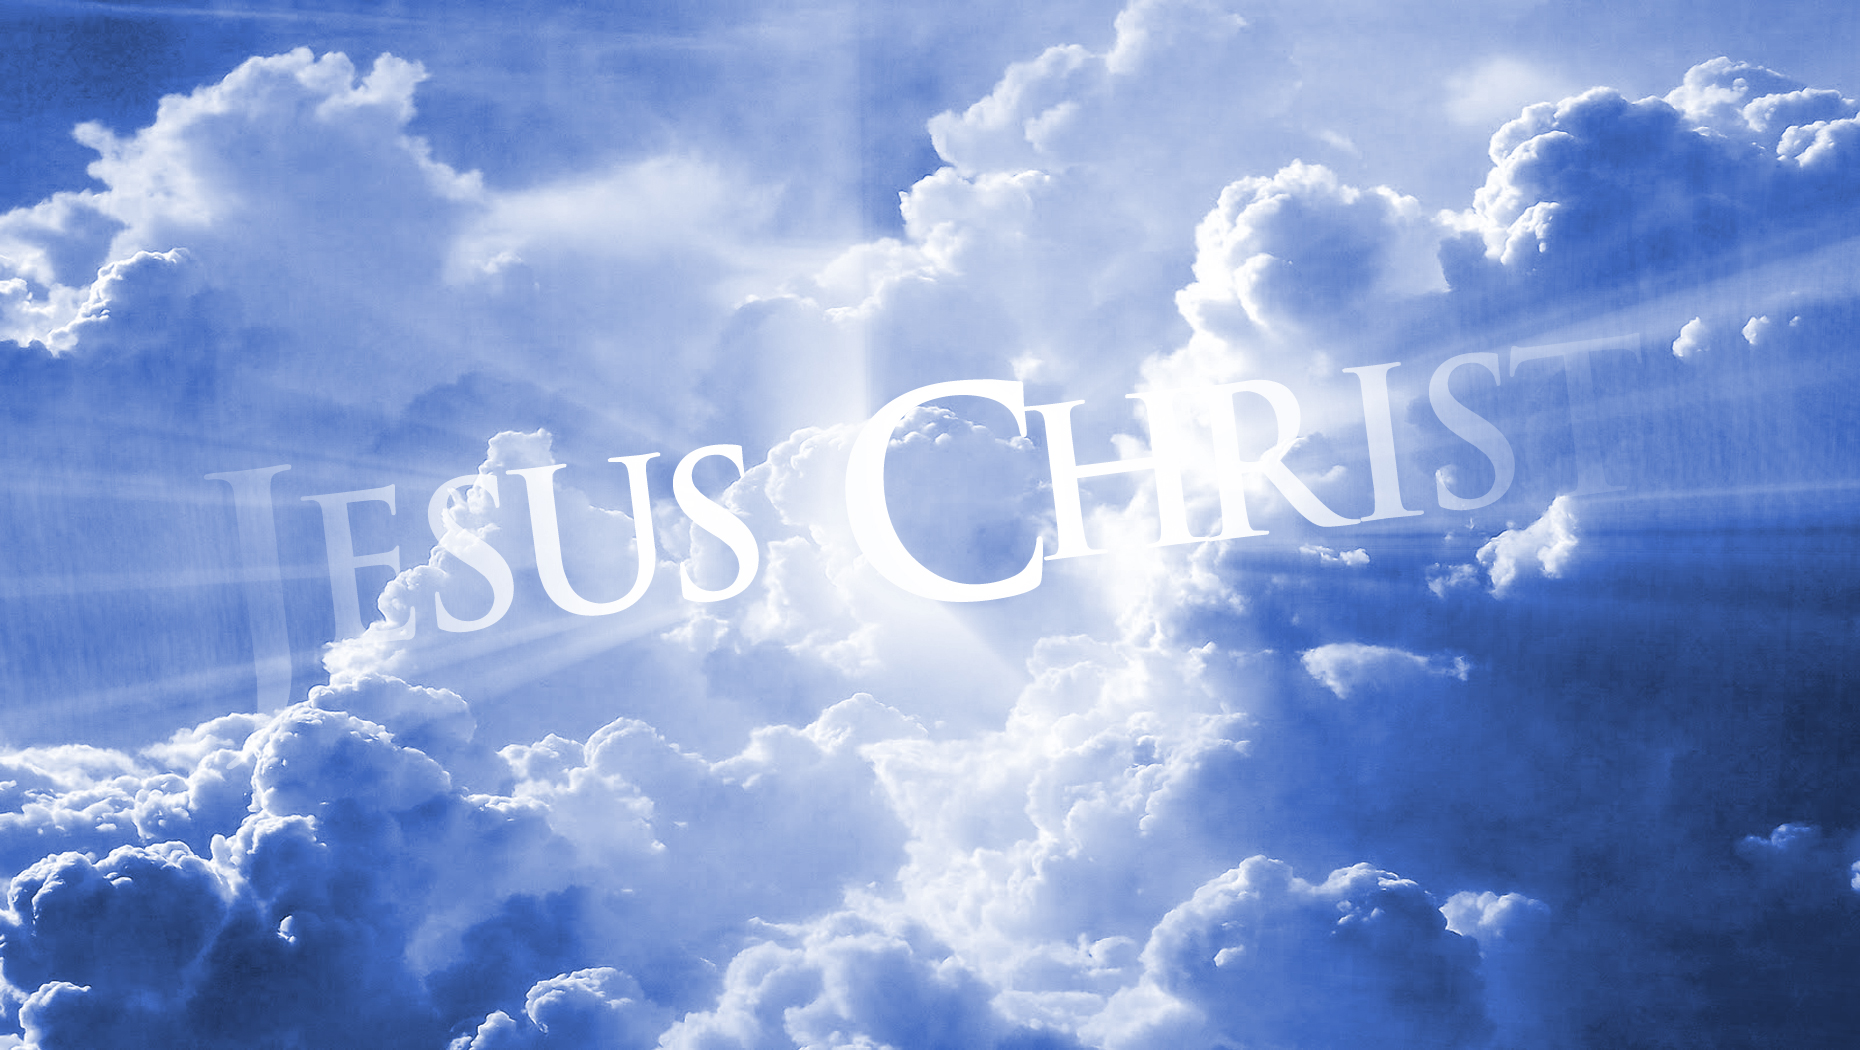 Christ in Heaven Wallpaper   Christian Wallpapers and Backgrounds 1860x1050